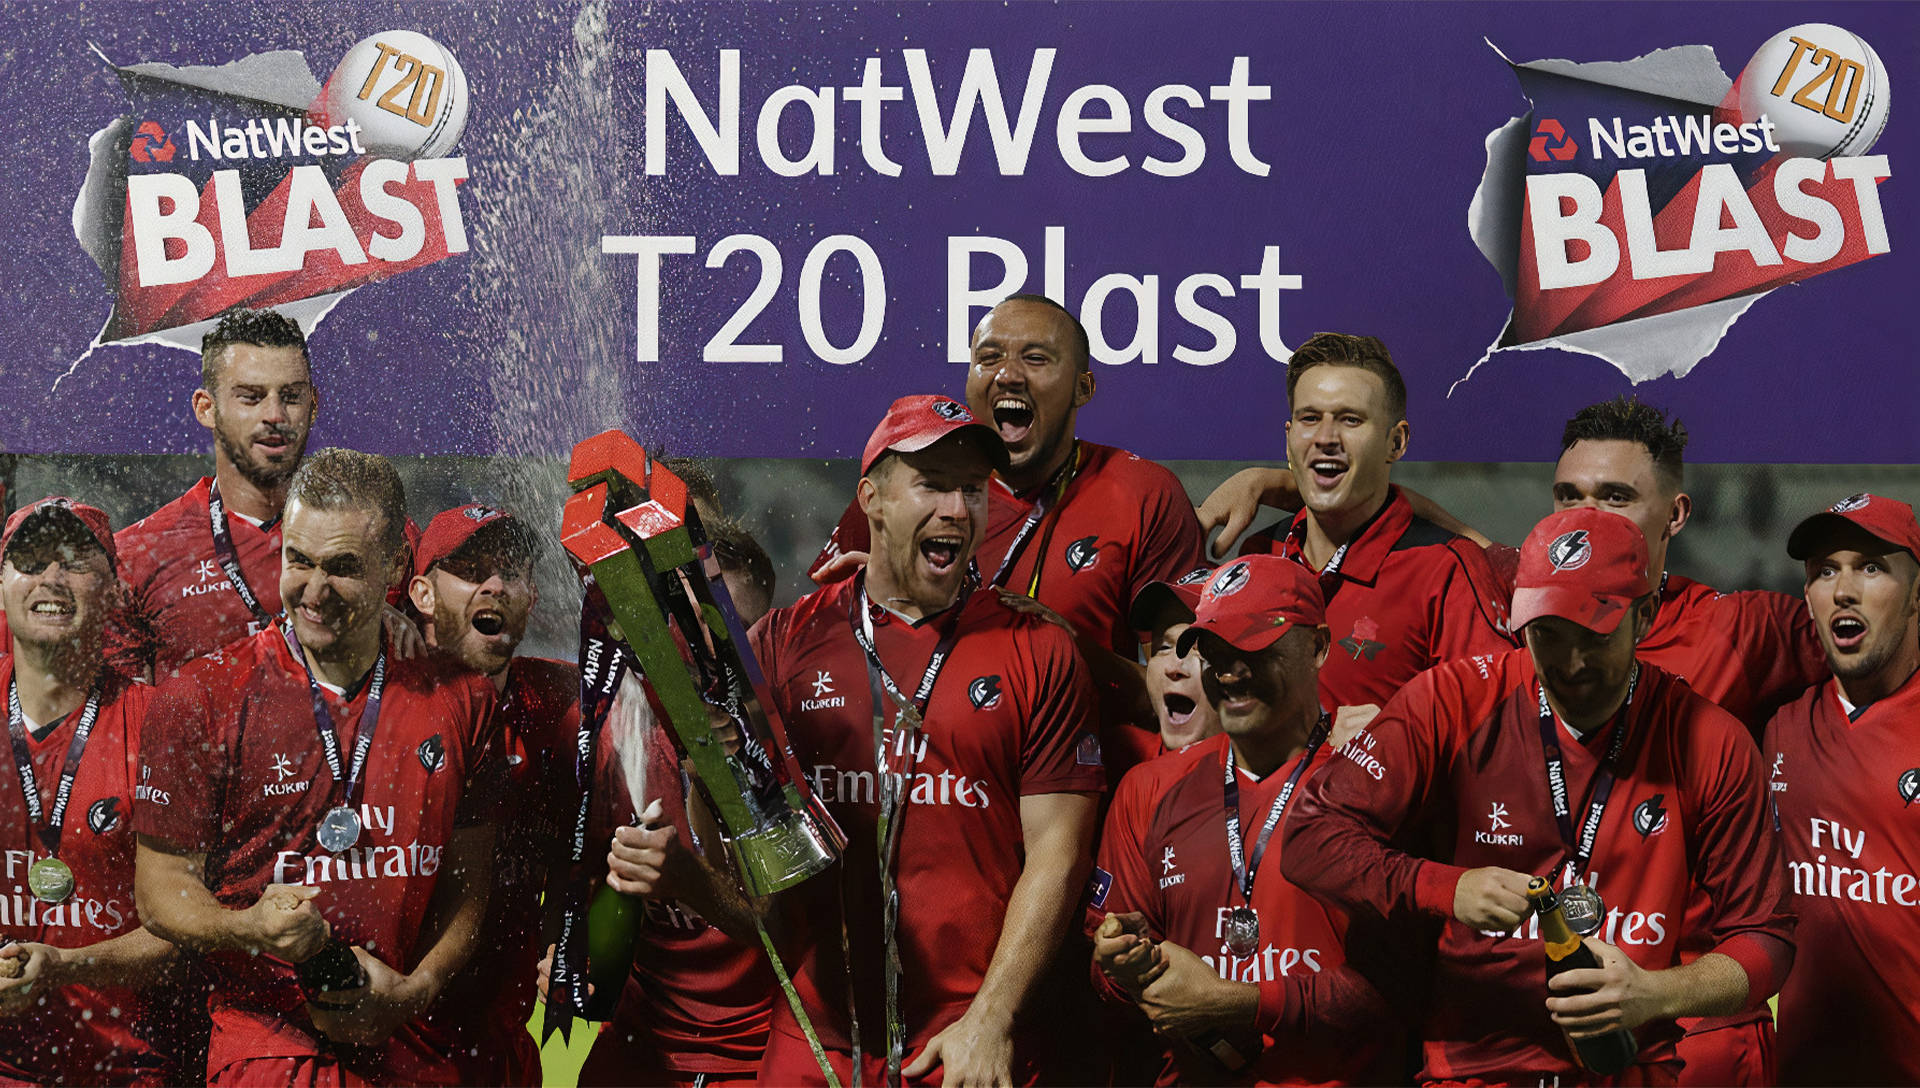 You can place bets on England NatWest T20 Blast League after registering on the site